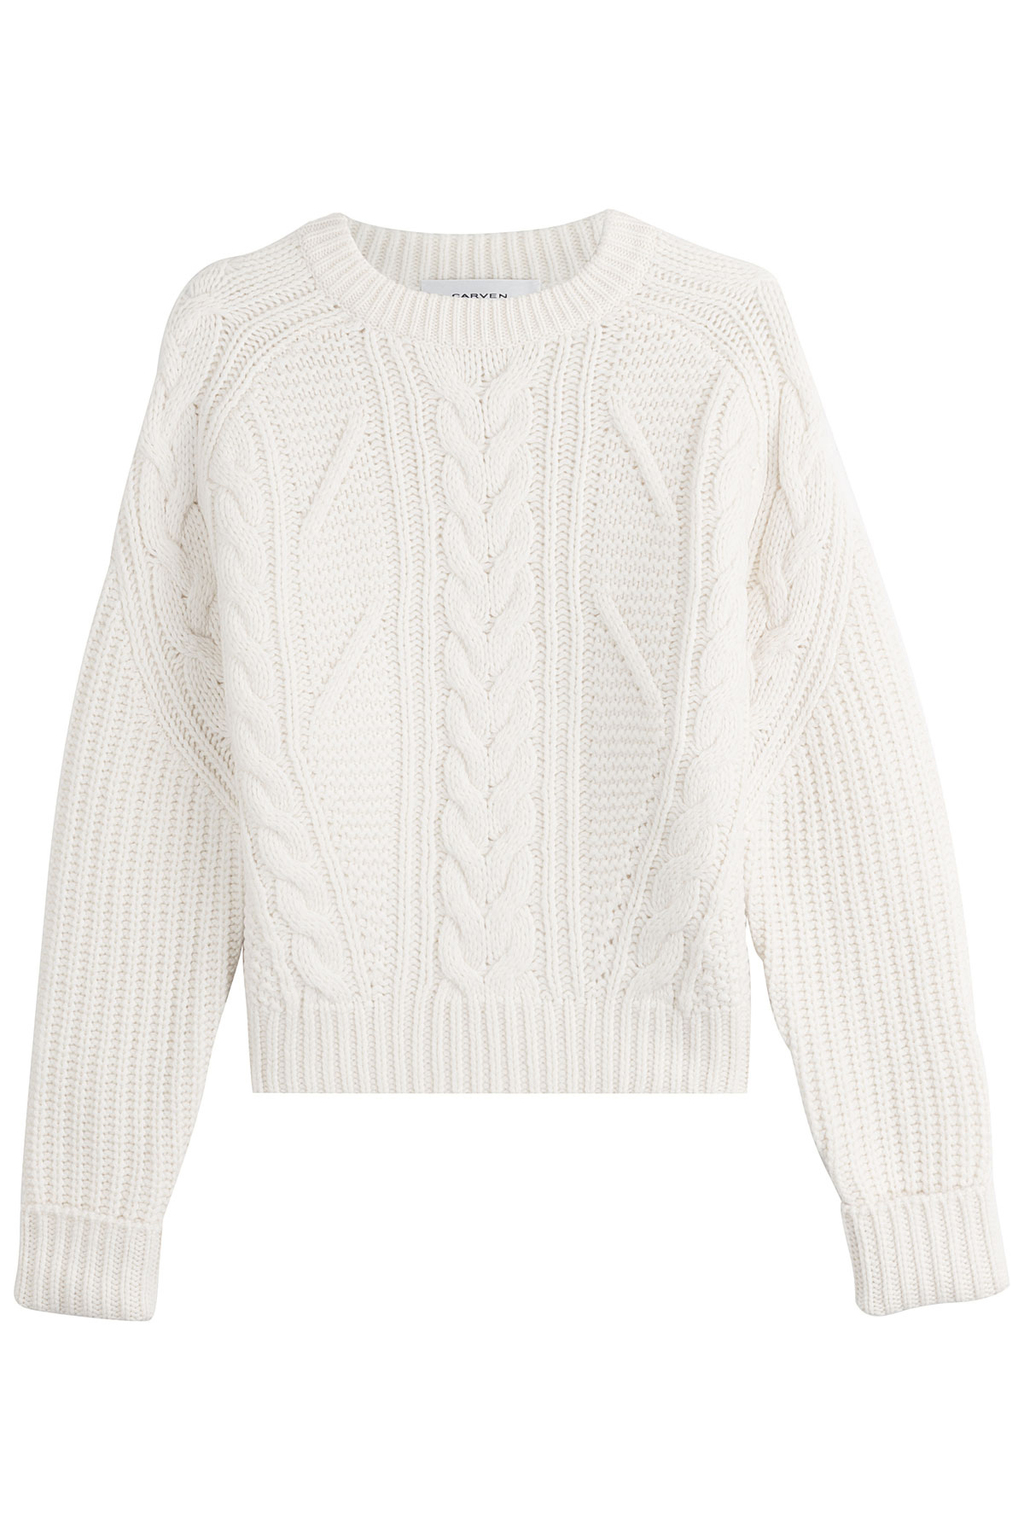 Wool Pullover - style: standard; pattern: cable knit; predominant colour: ivory/cream; occasions: casual, creative work; length: standard; fibres: wool - mix; fit: standard fit; neckline: crew; sleeve length: long sleeve; sleeve style: standard; texture group: knits/crochet; pattern type: knitted - big stitch; pattern size: standard; season: a/w 2016; wardrobe: highlight